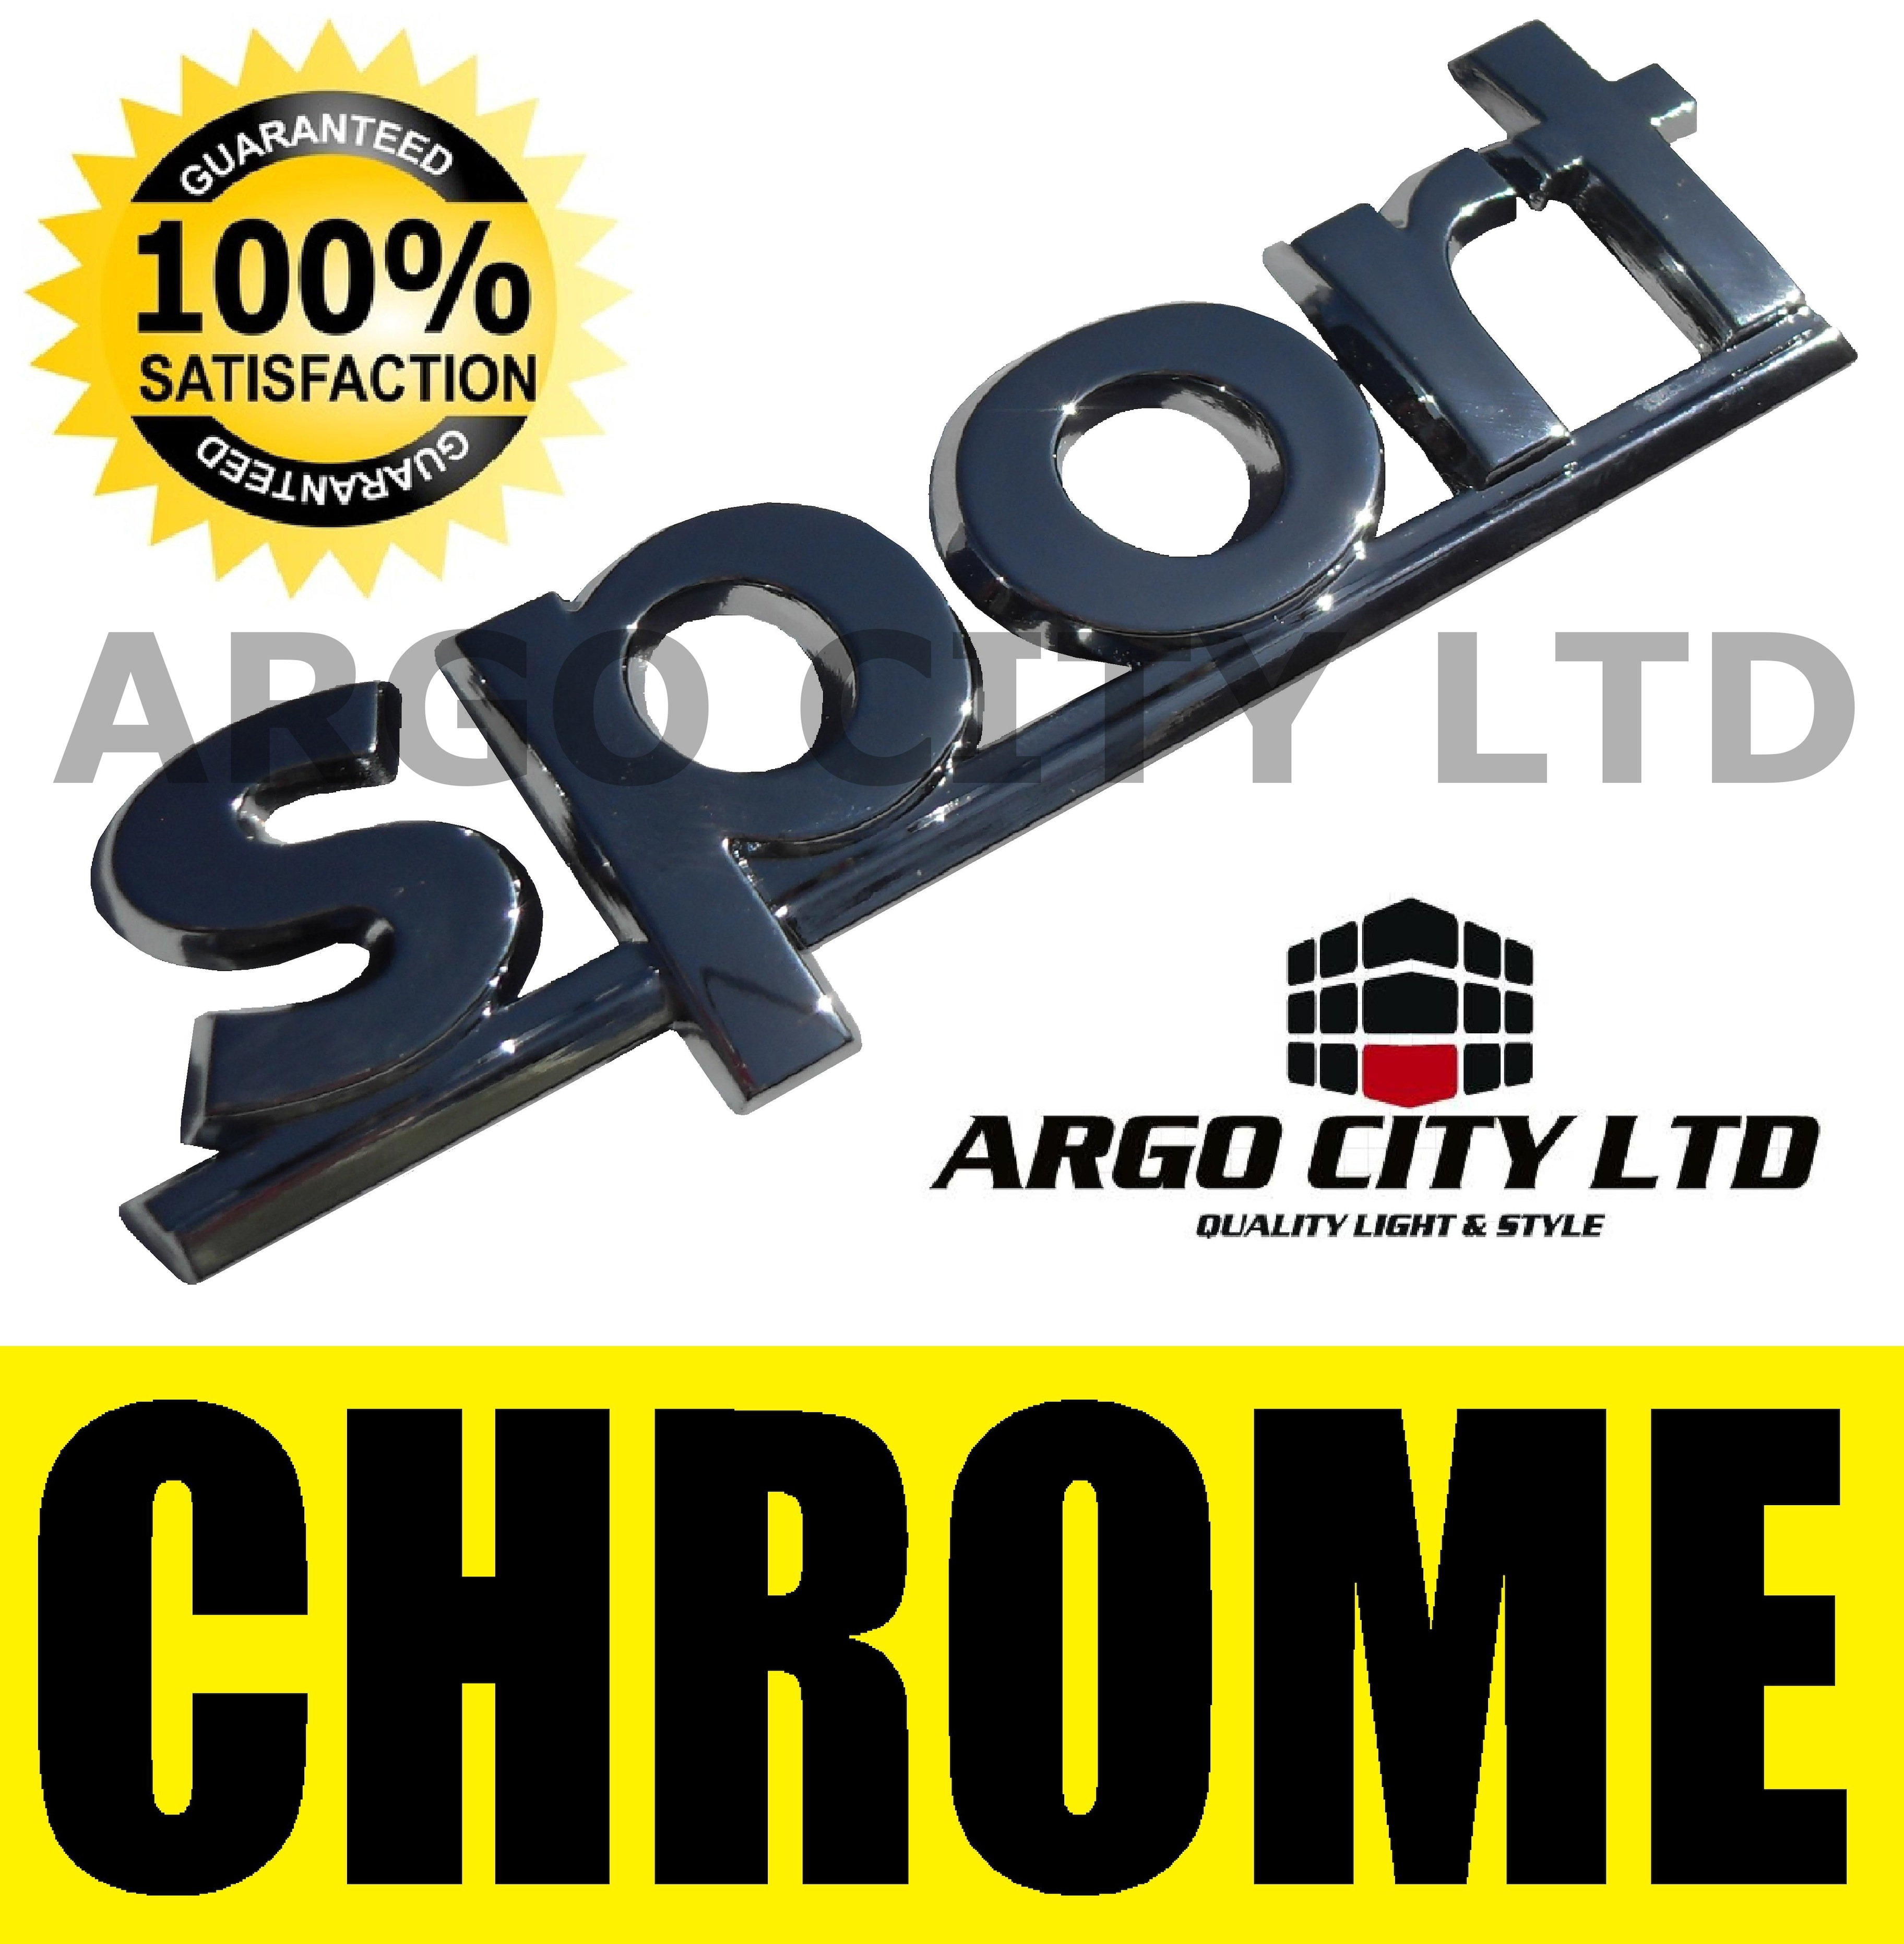 CHROME SPORT BADGE SILVER 3D EMBLEM DECAL STICKER VAUXHALL CORSA SXI SI VXR GSI